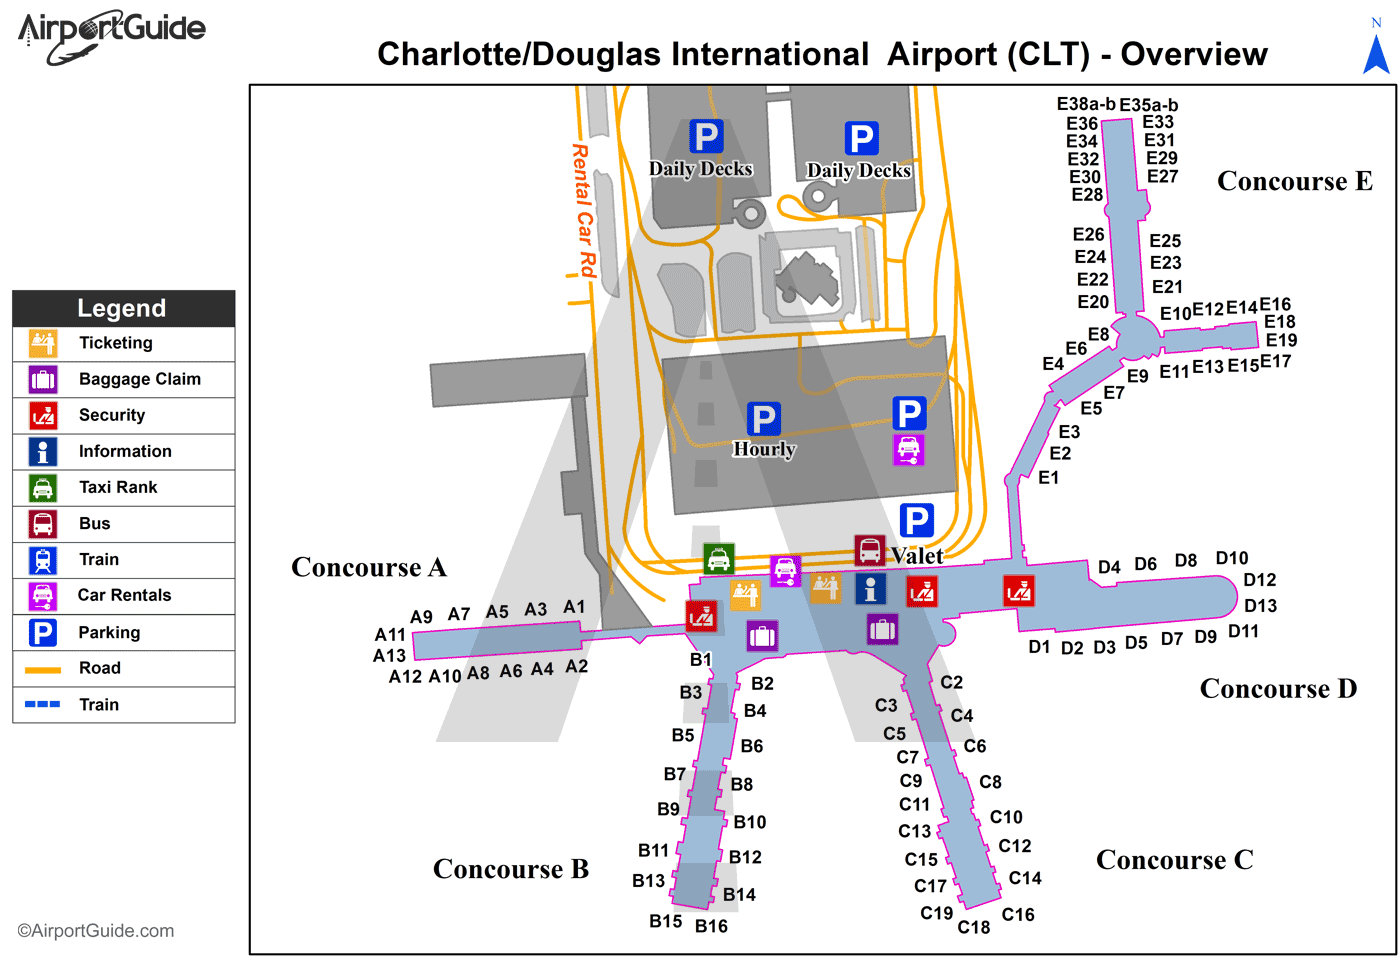 Airport Maps Charts Diagrams  CharlotteDouglas